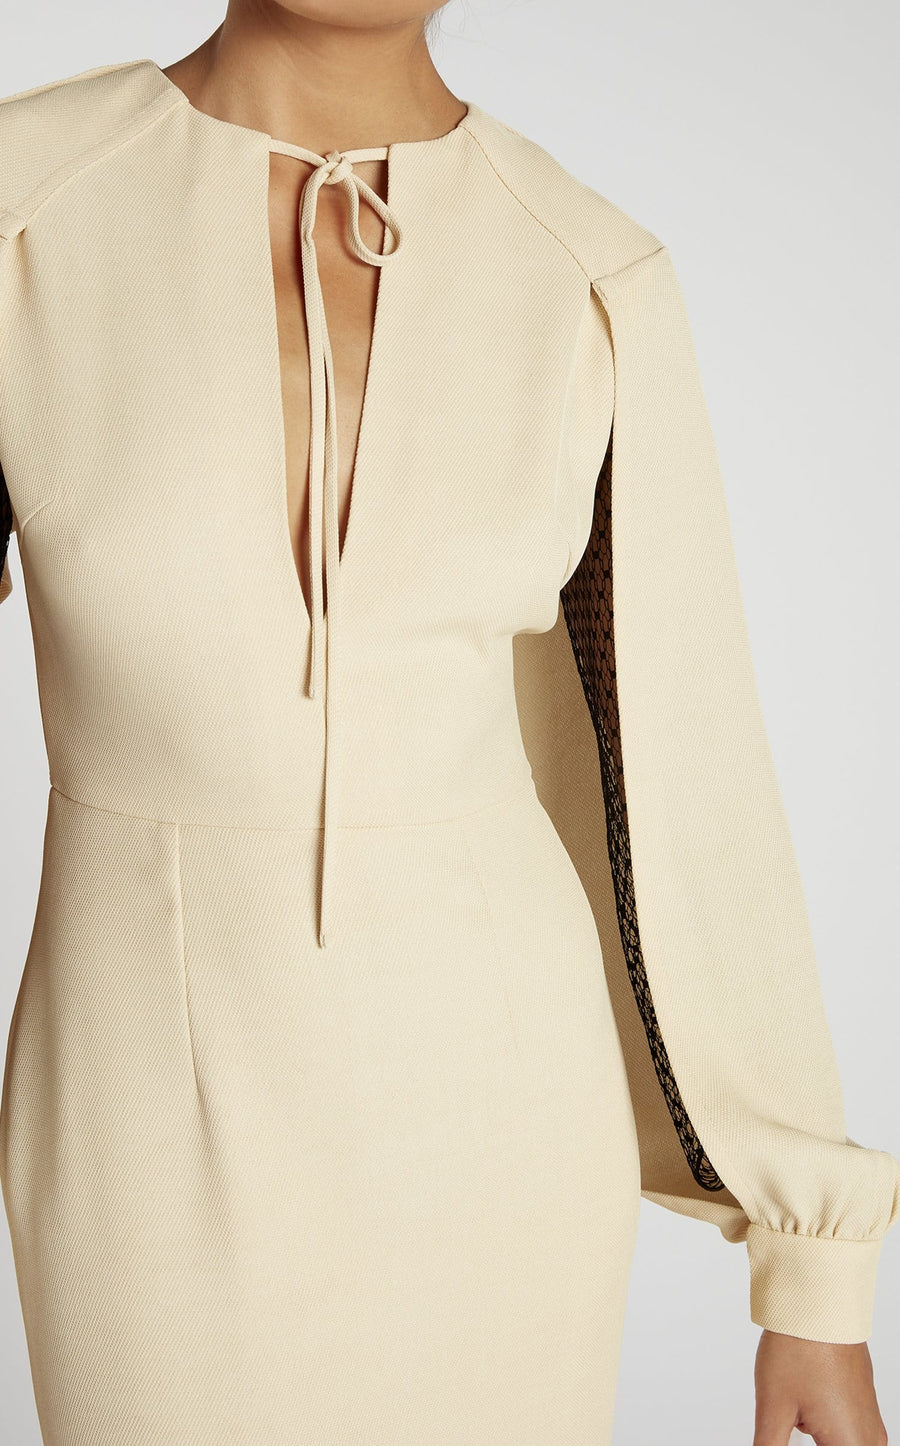 Fort Dress In Oatmeal/Black from Roland Mouret